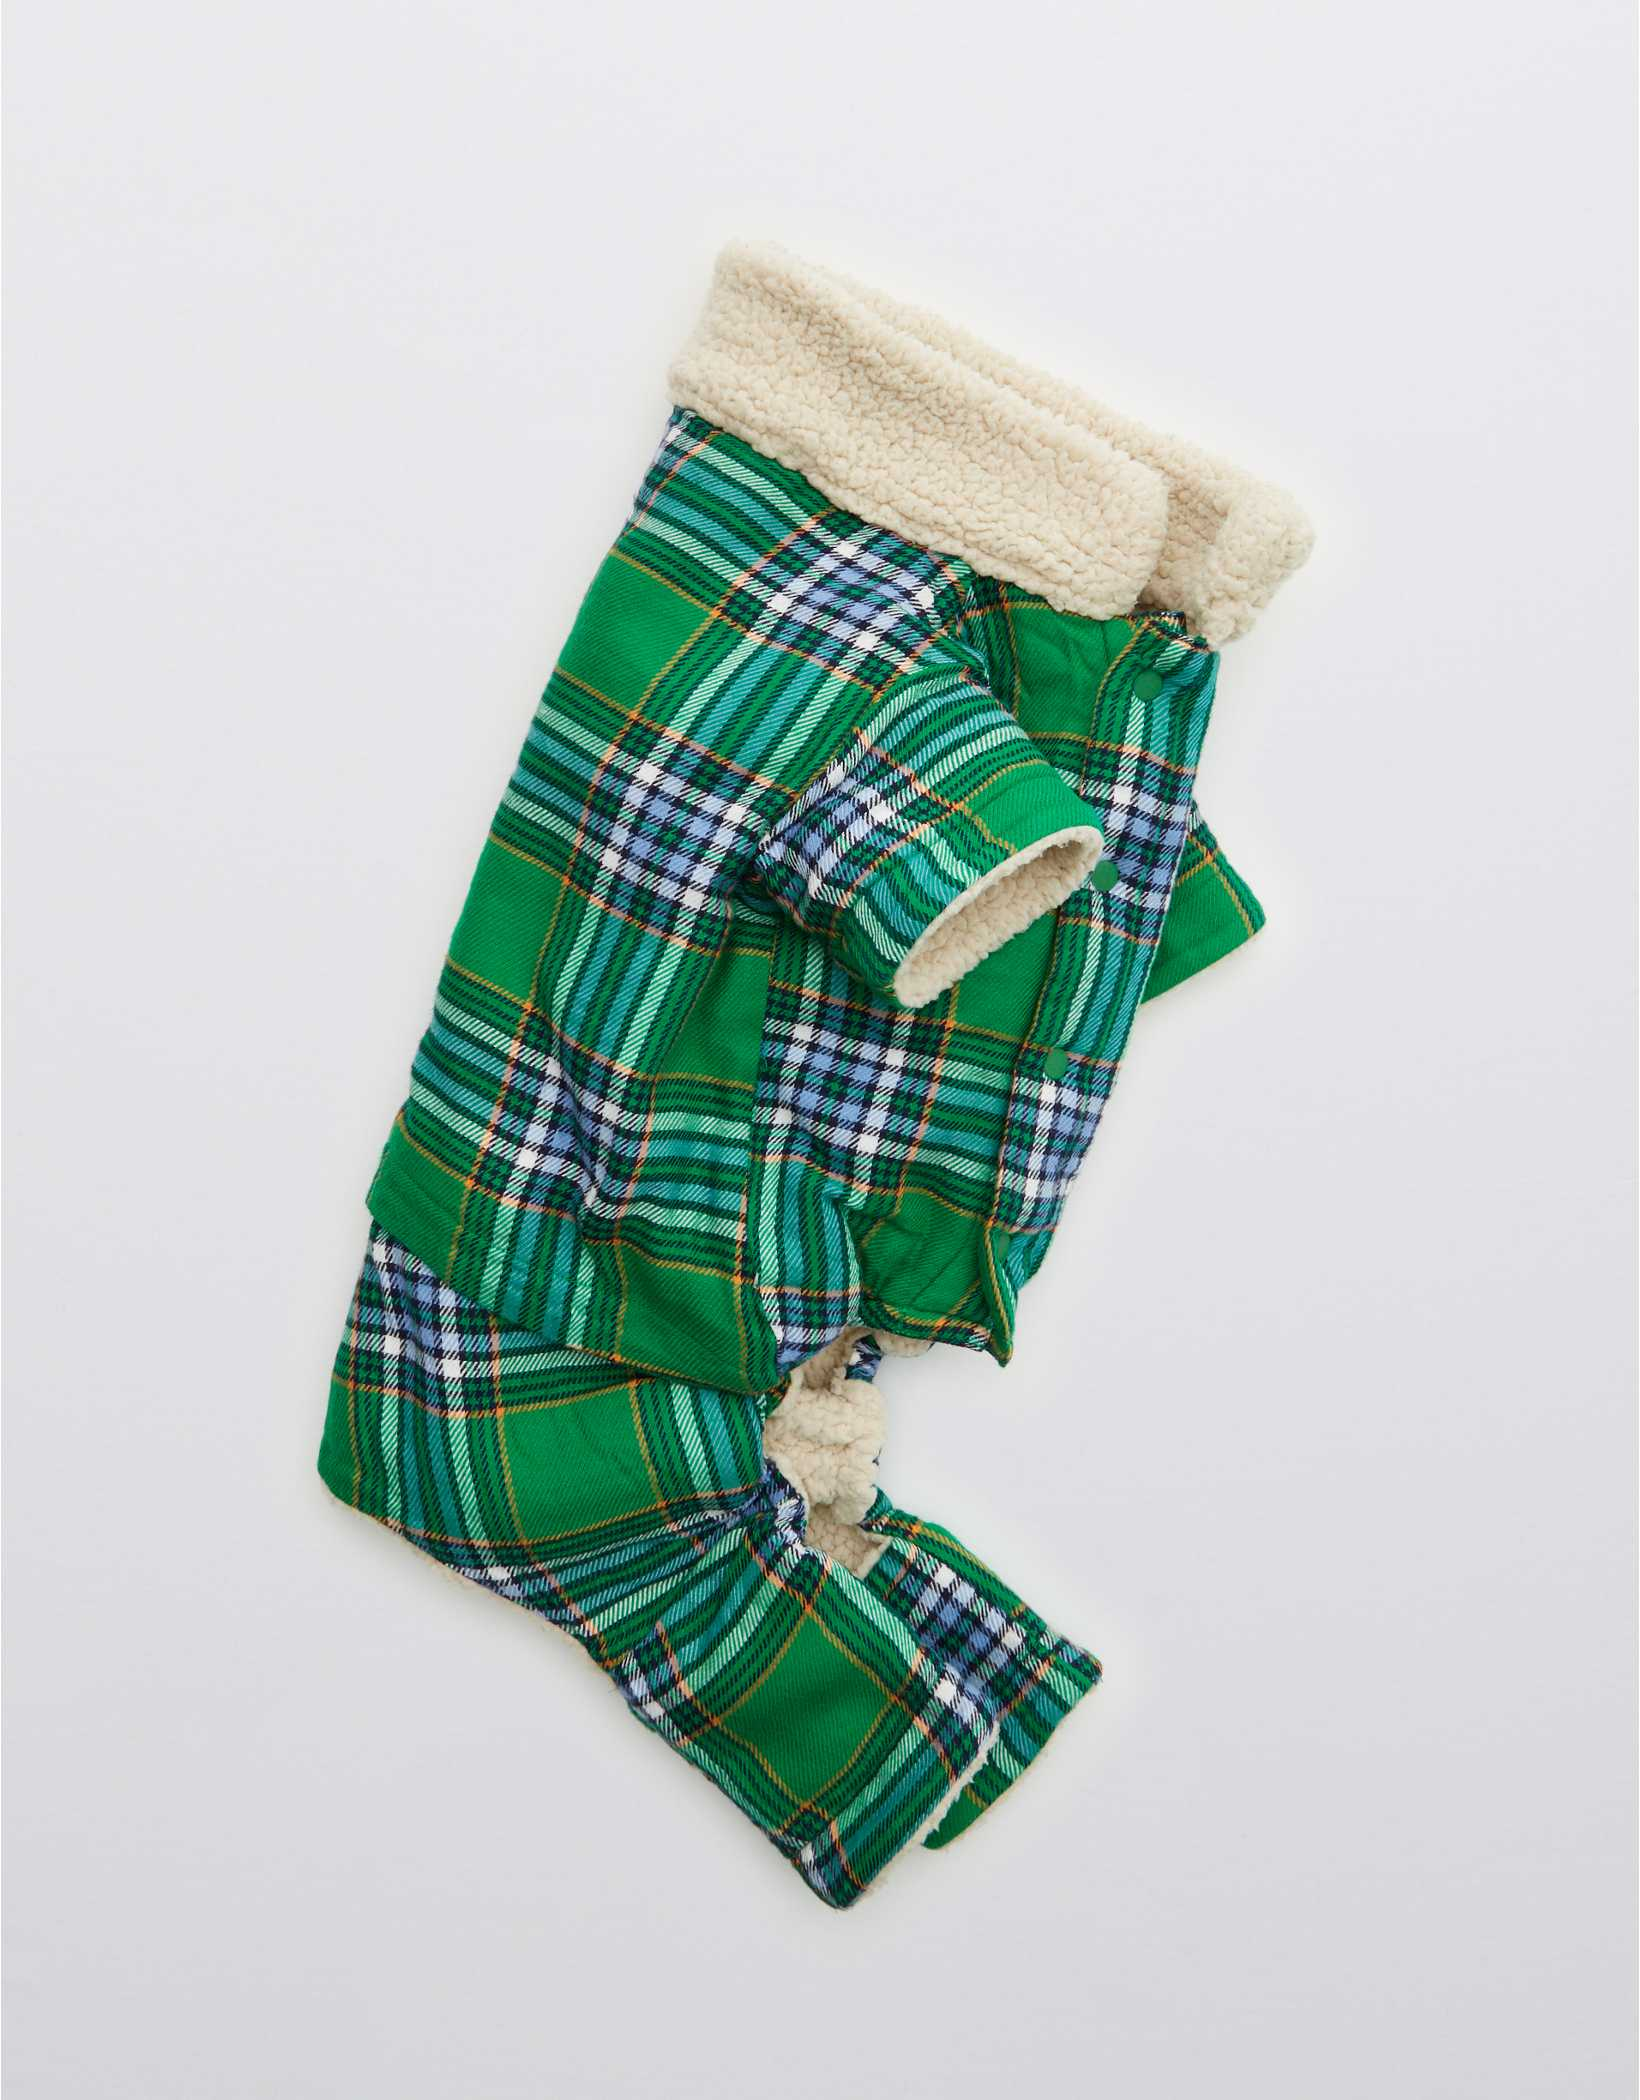 OFFLEASH By Aerie Flannel Dog Pajamas